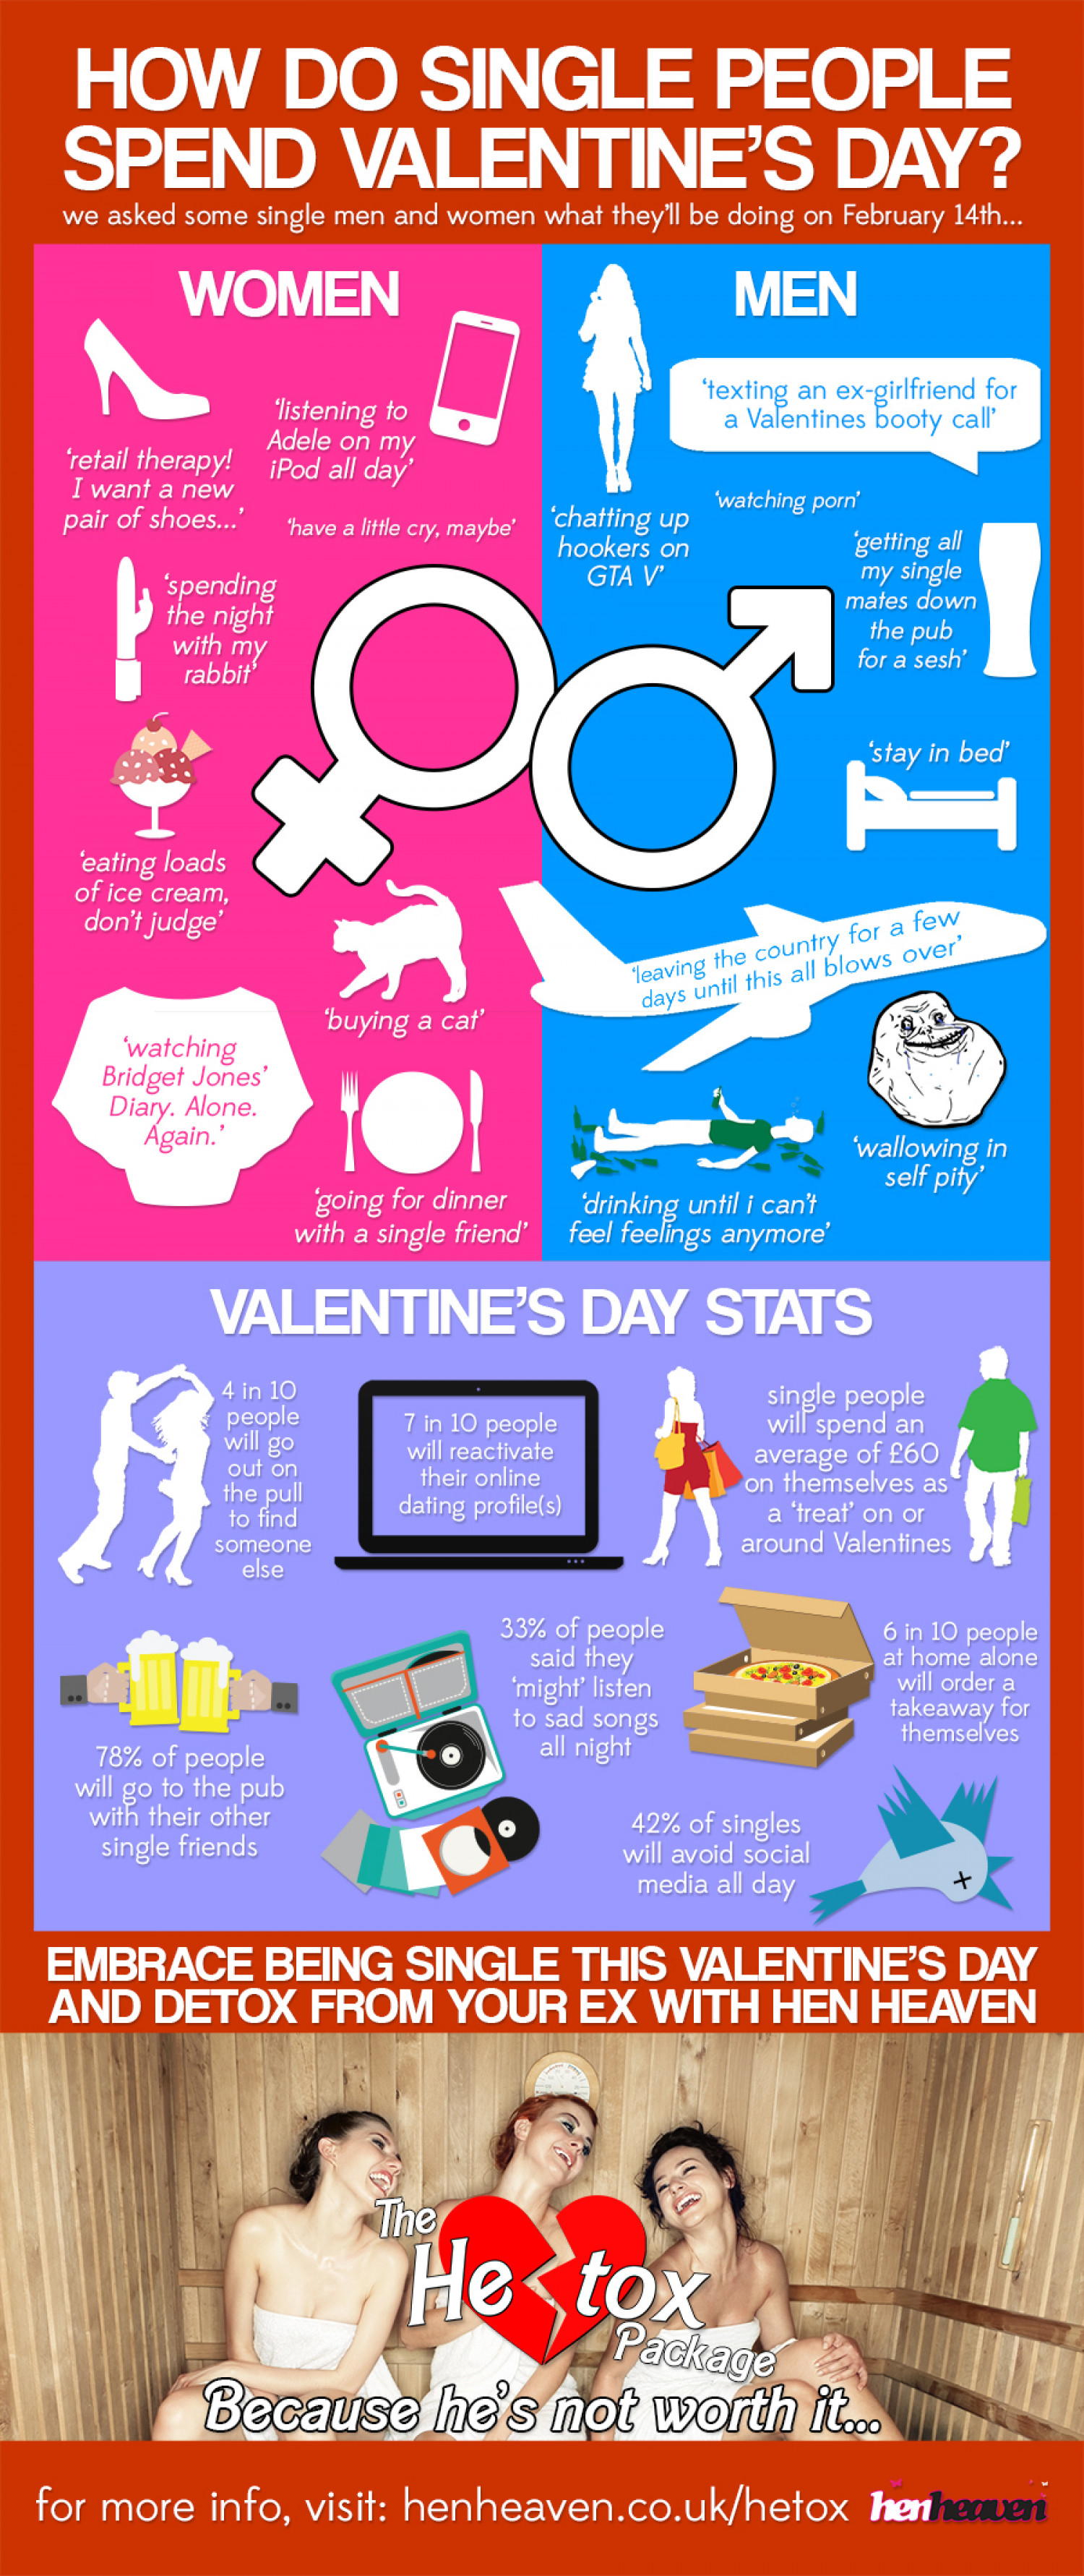 How Do Single People Spend Valentine's Day? Infographic